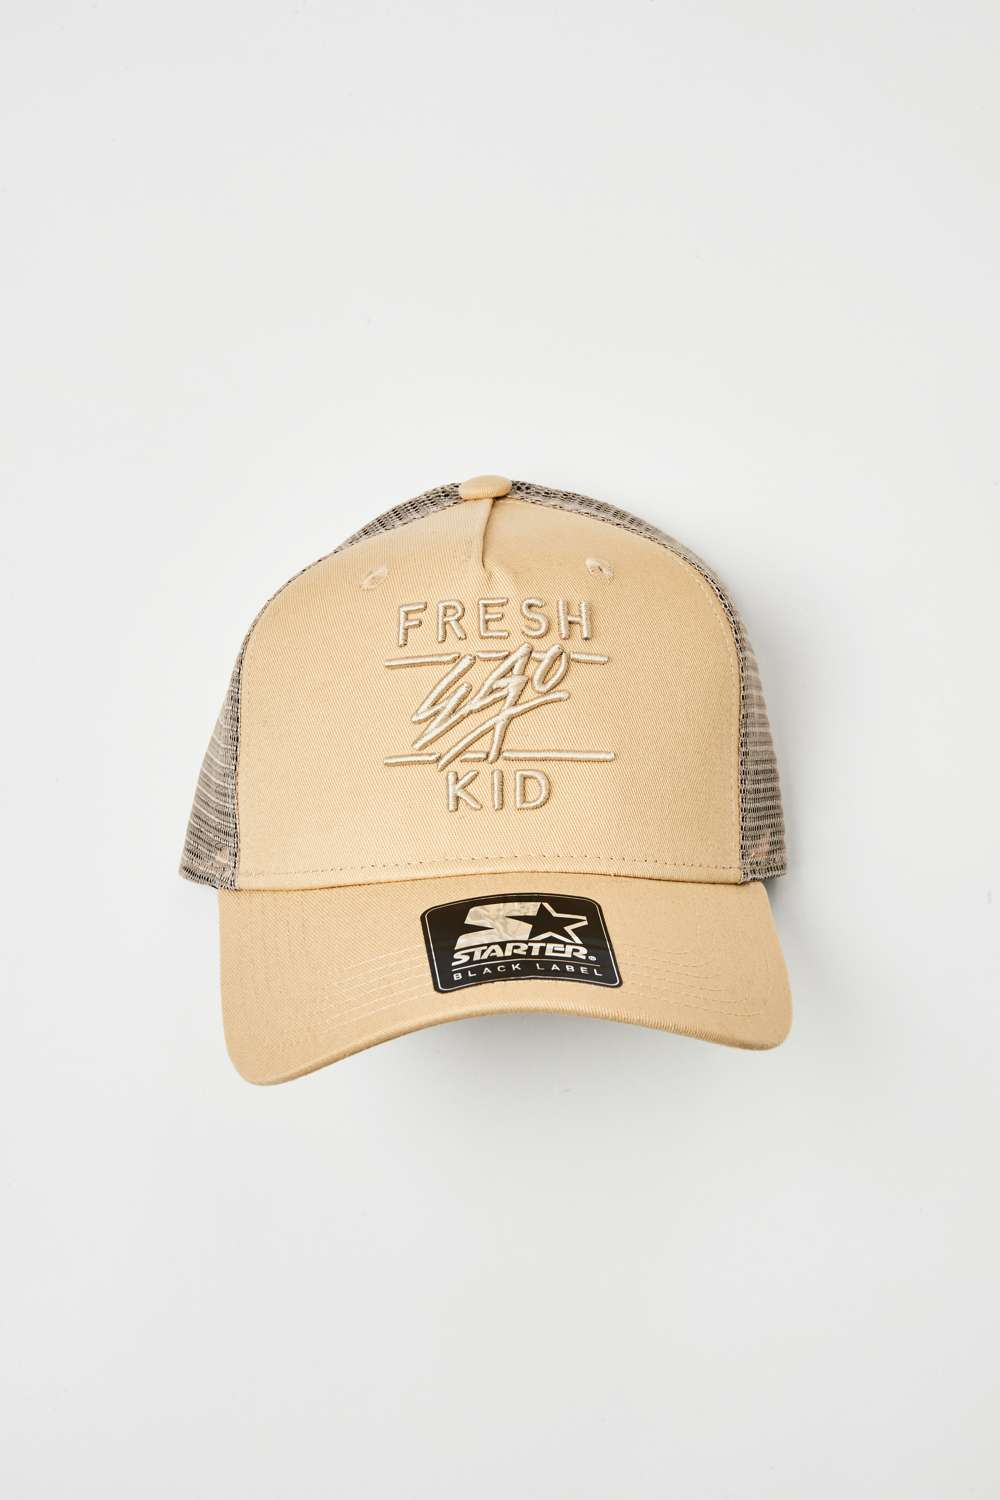 Fresh Ego Kid Mesh Trucker Cap - Sand